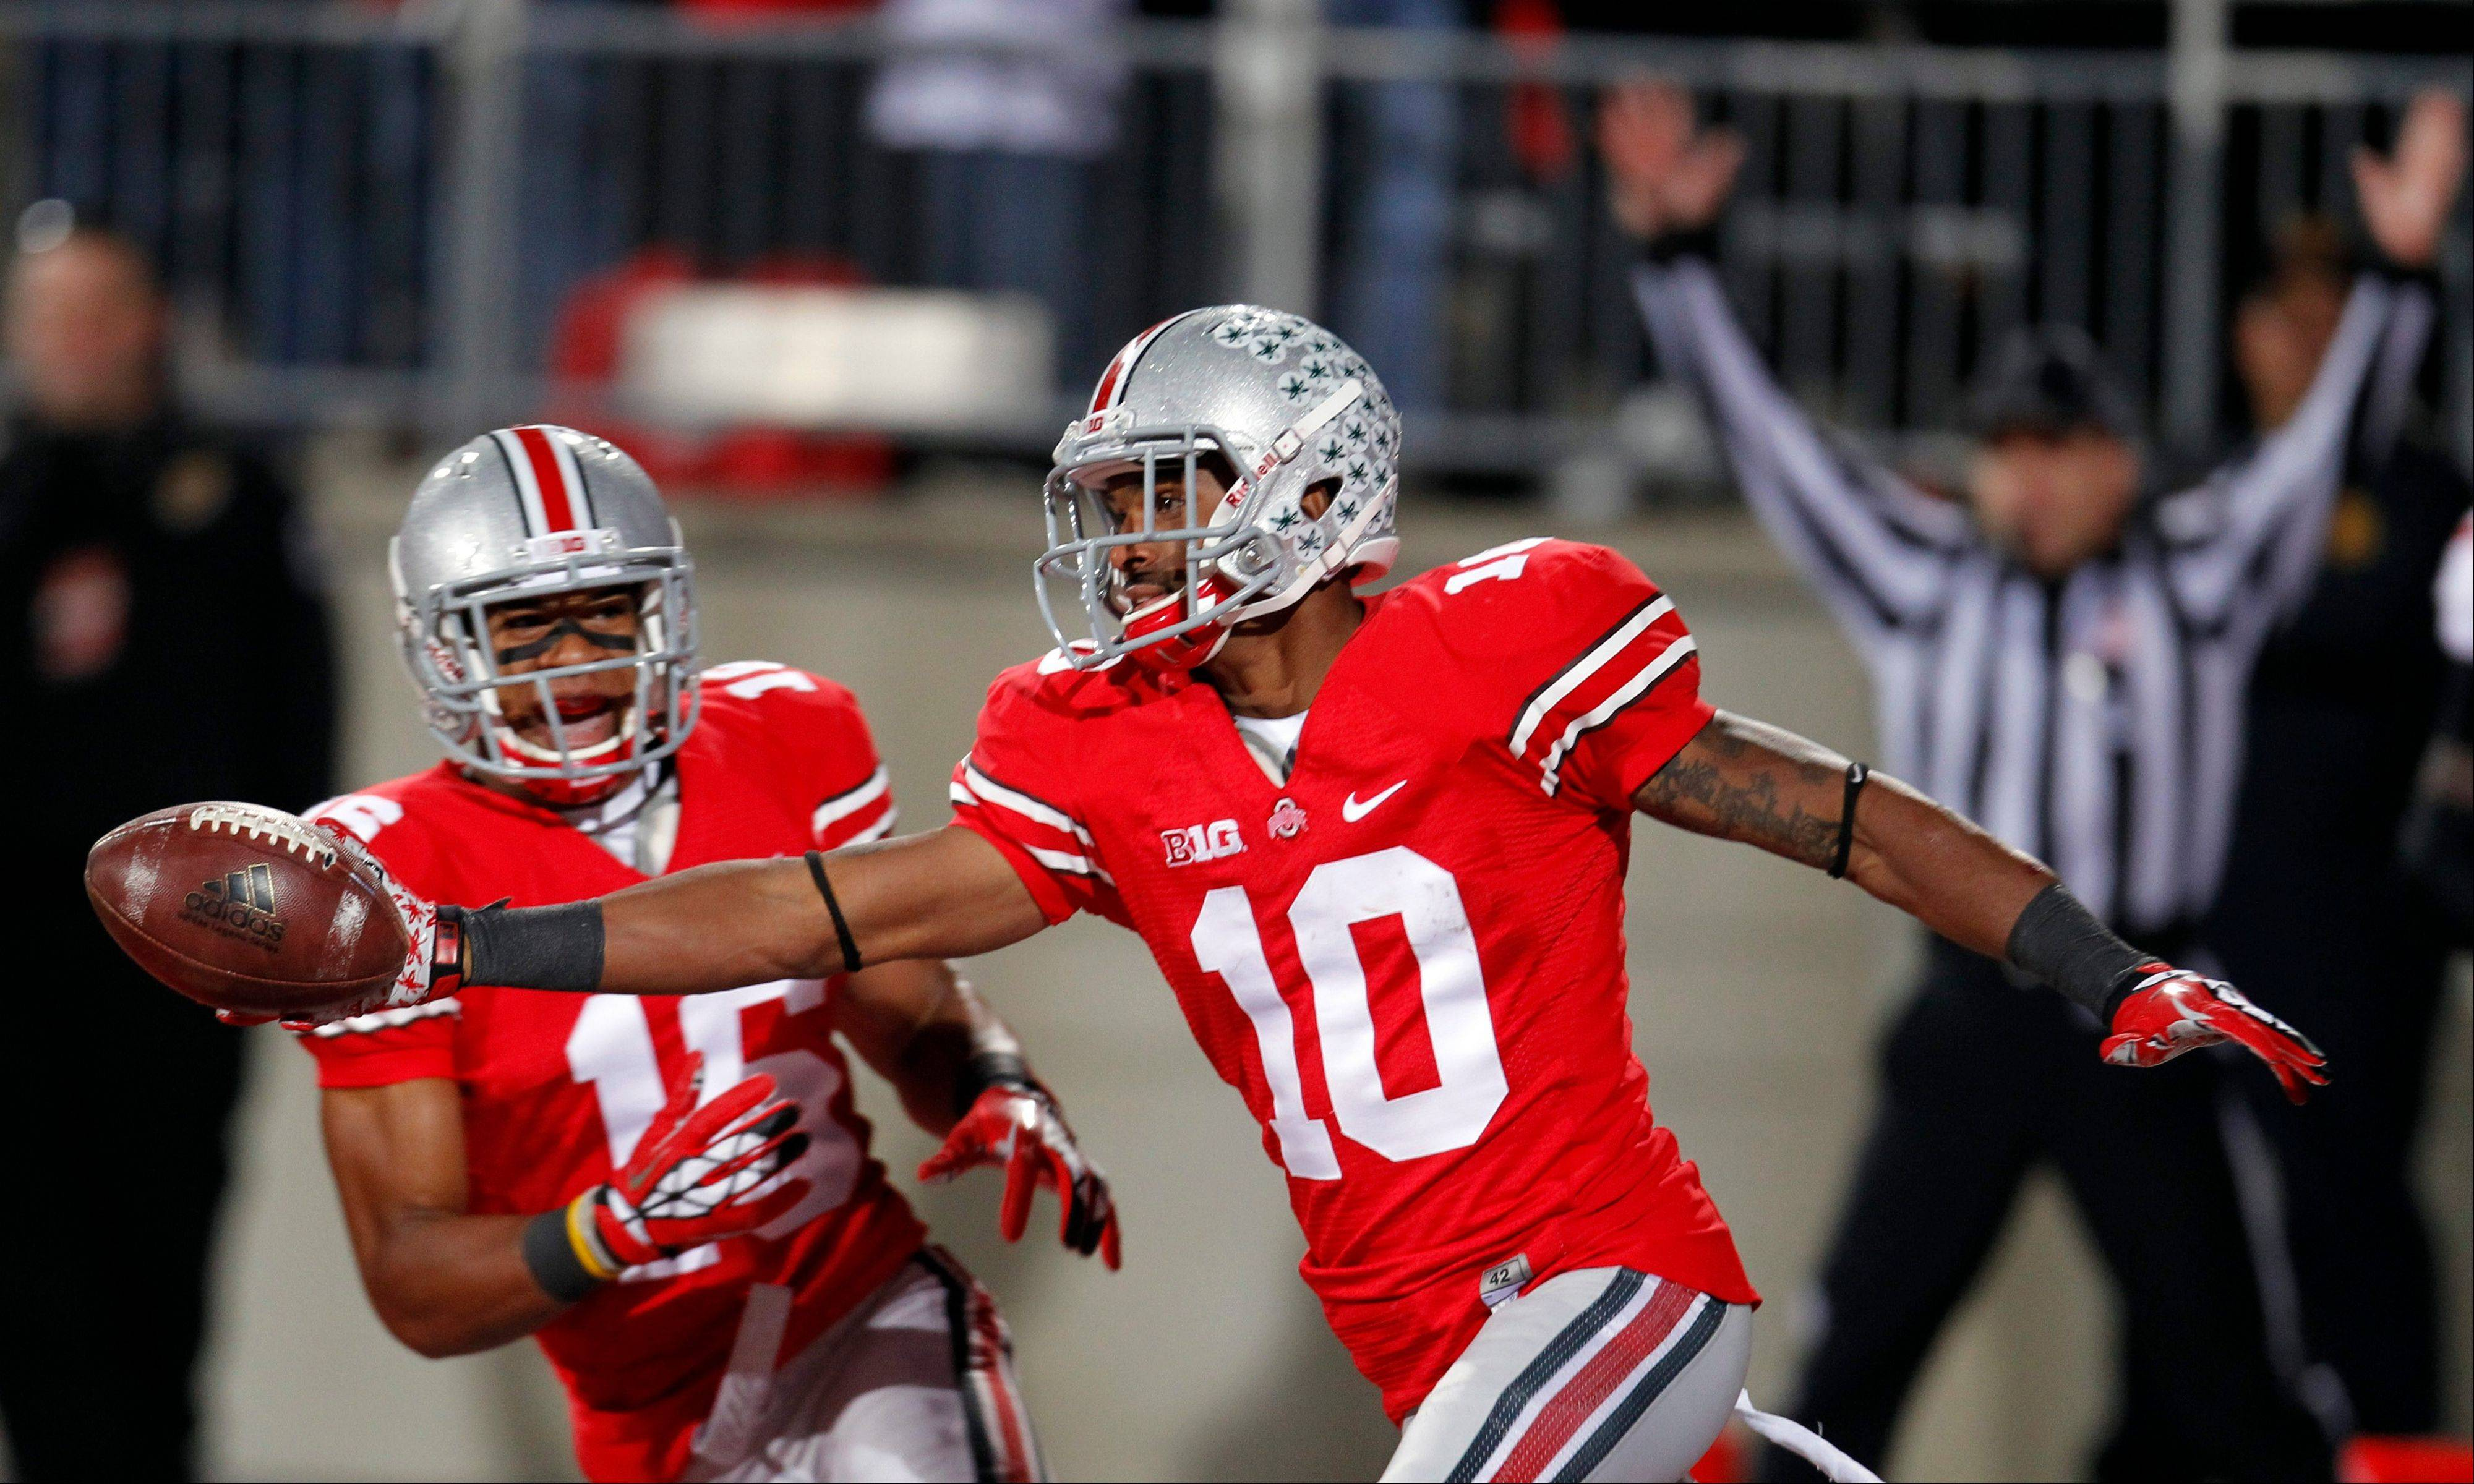 Ohio State lights up Nebraska, 63-38